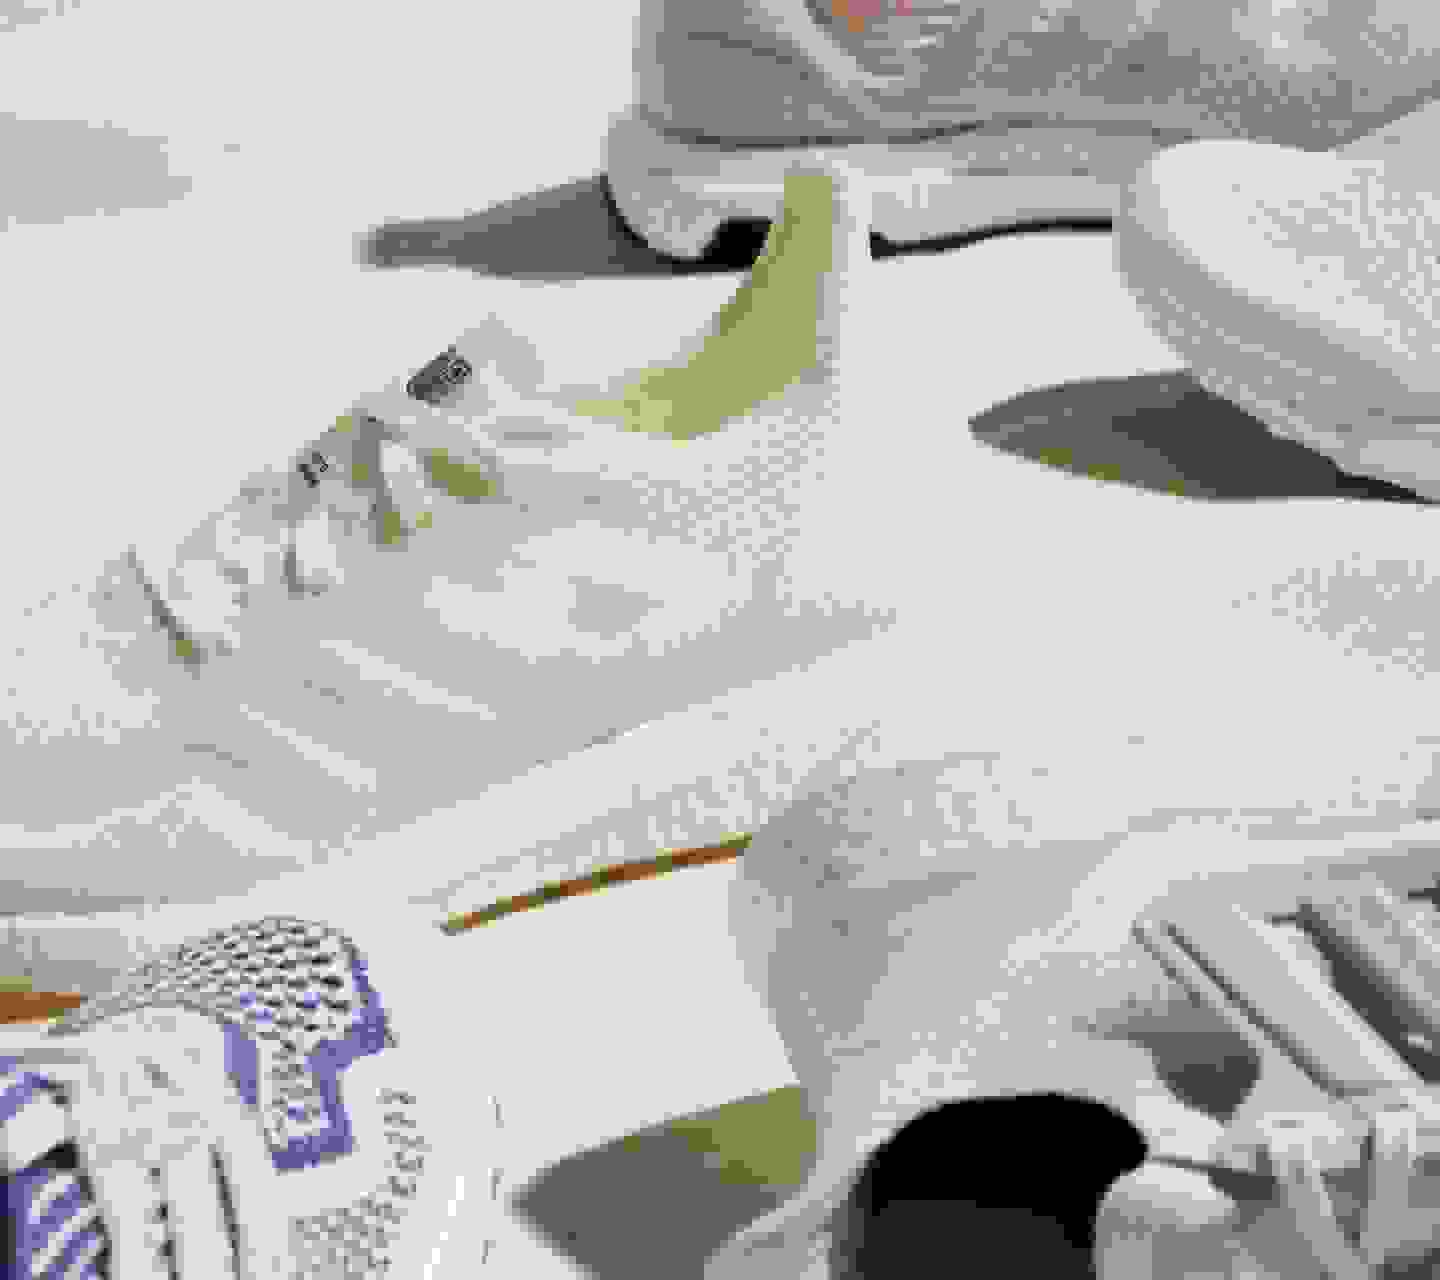 The SS21 sustainable Ultraboost models on a light surface with notable shadows.